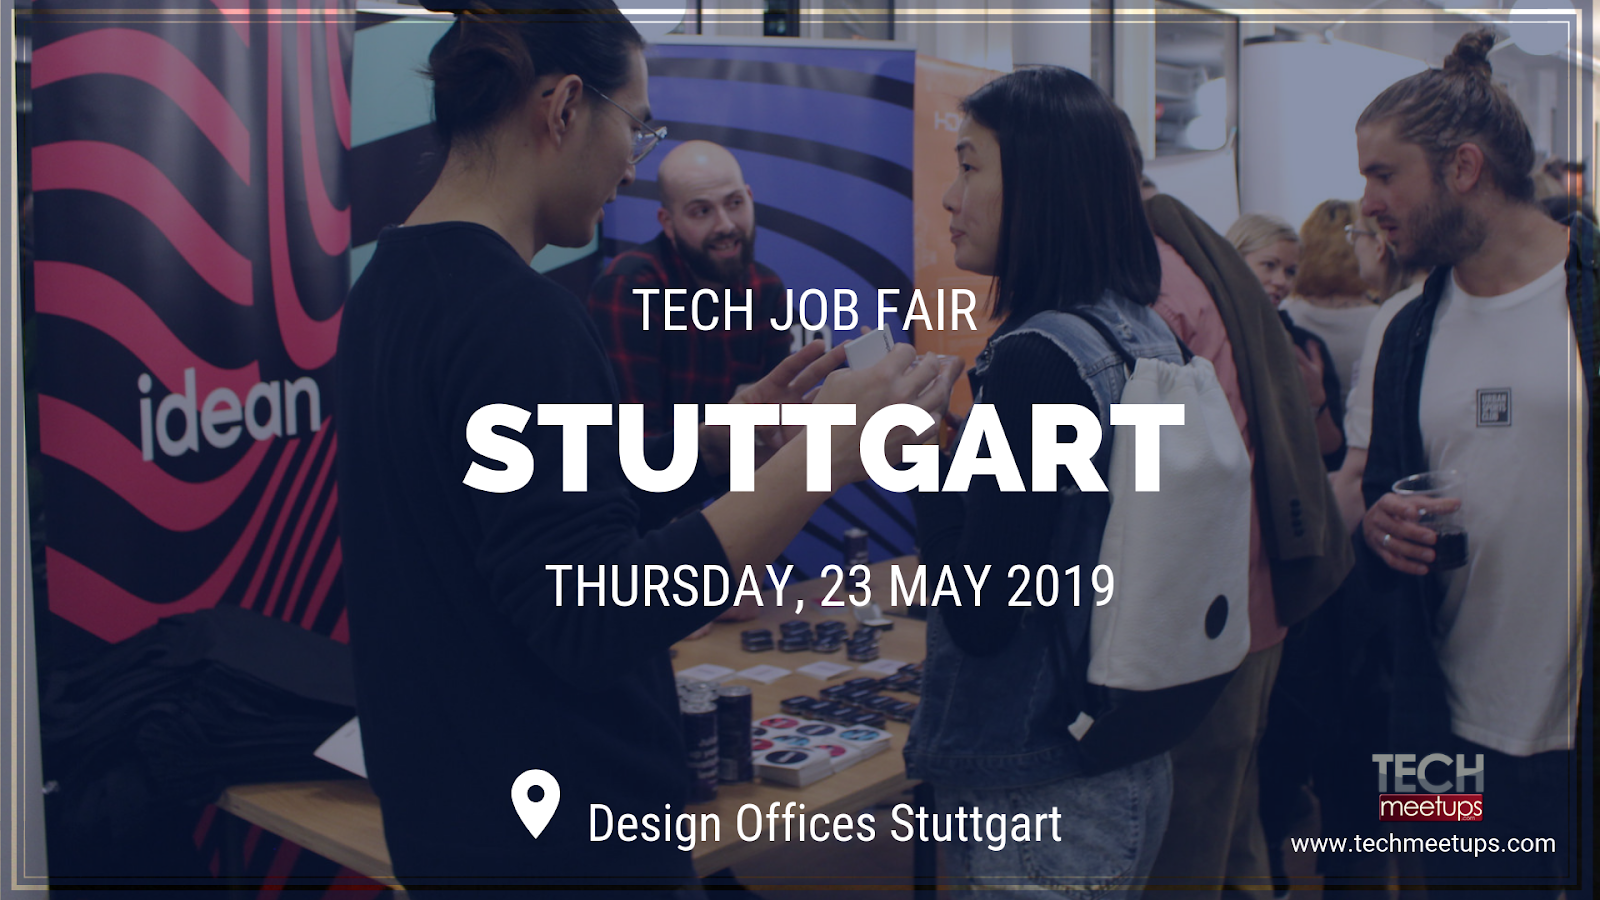 join stuttgart tech job fair